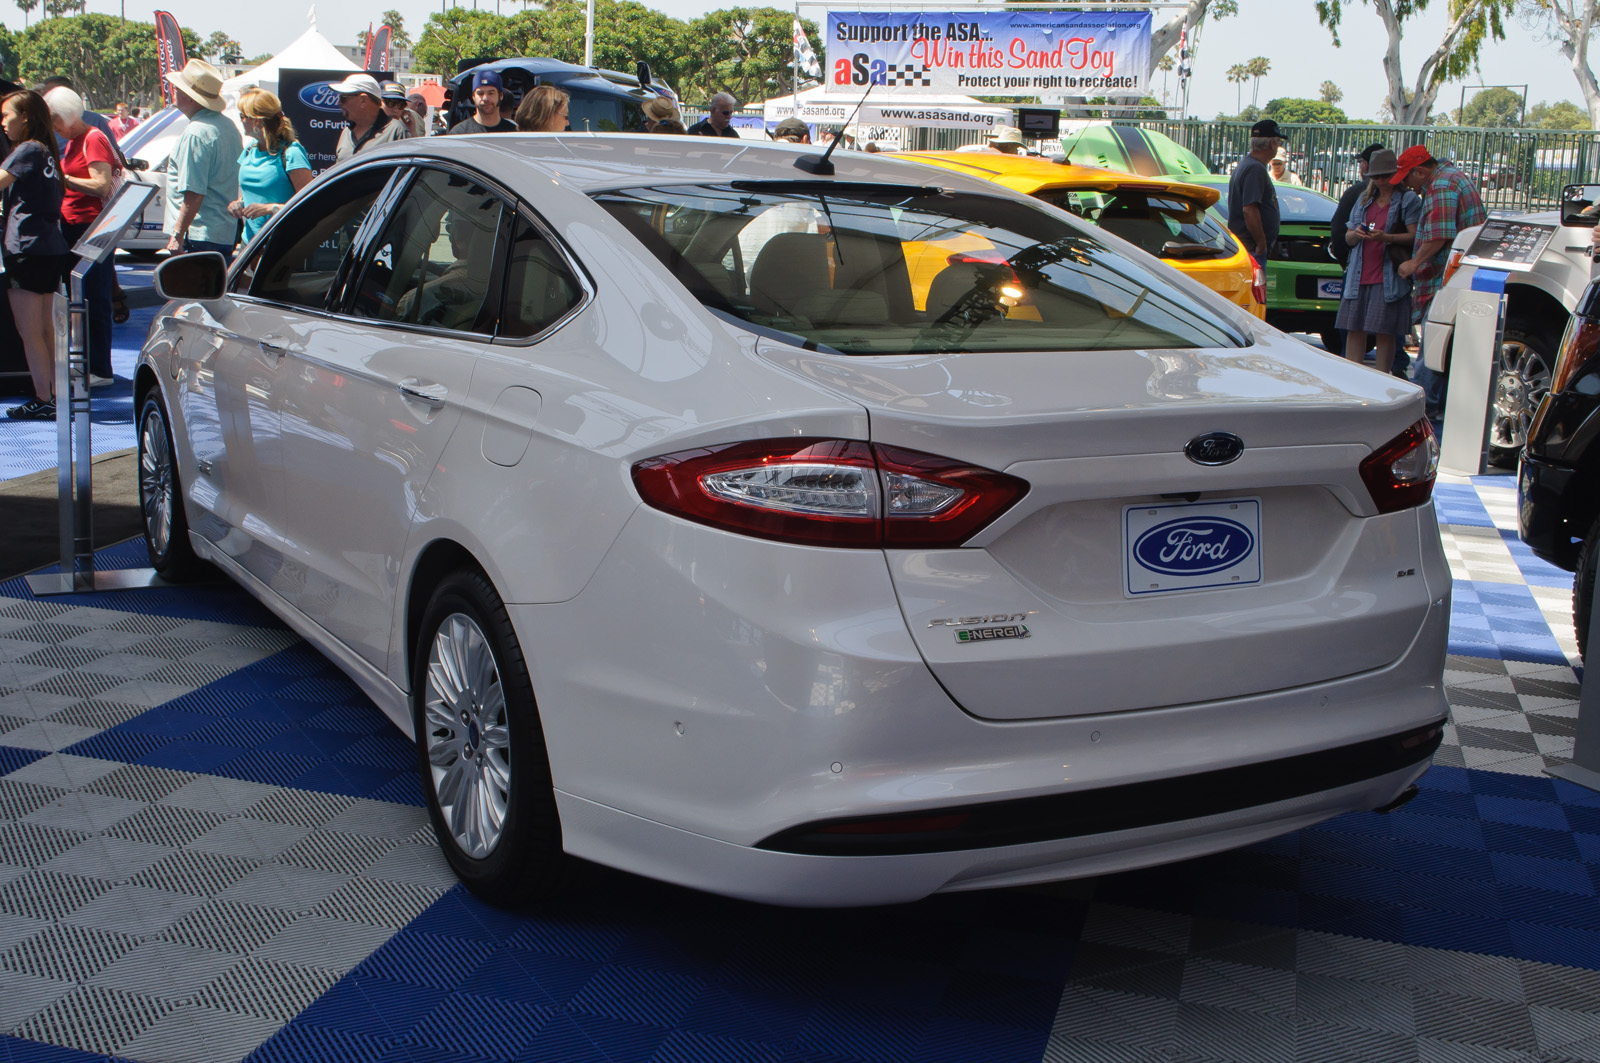 ford fusion usa seriess #10